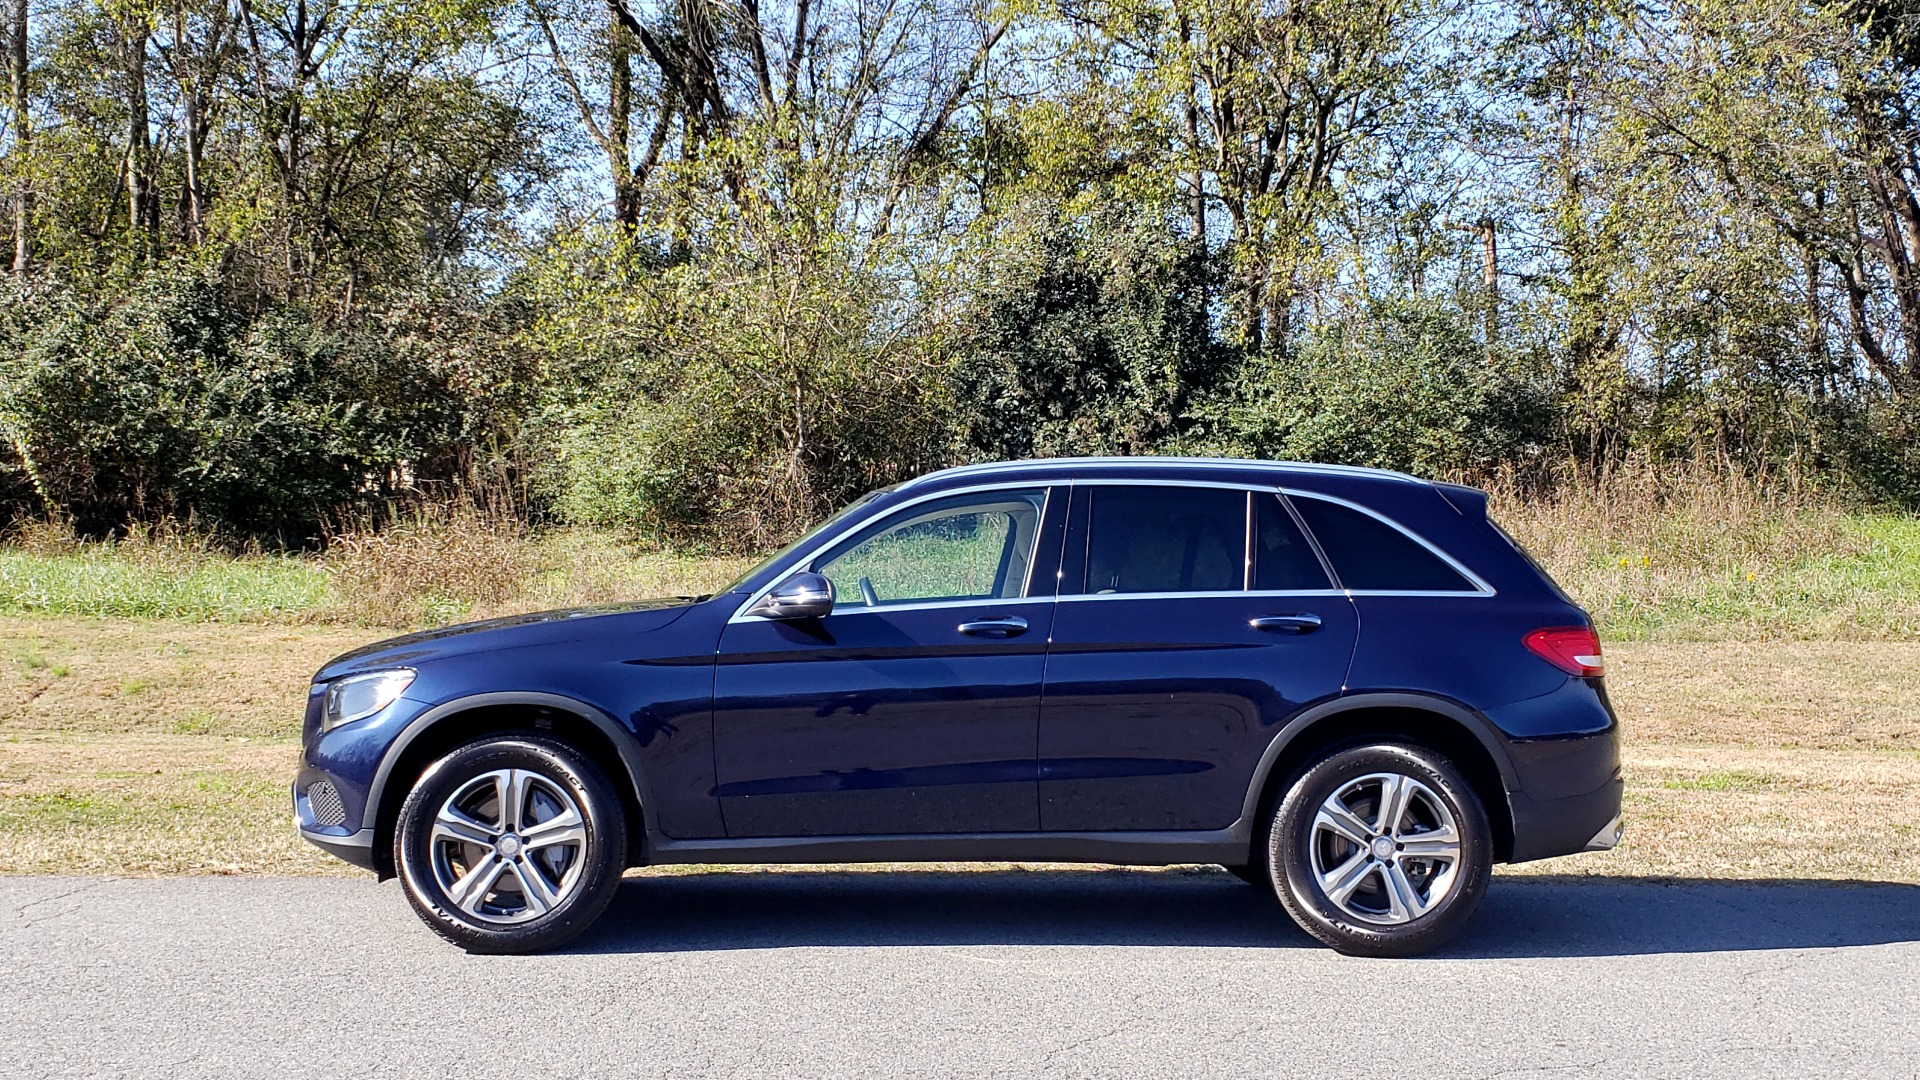 Used 2017 Mercedes-Benz GLC 300 4MATIC / PREM / NAV / KEYLESS-GO / SUNROOF / REARVIEW for sale Sold at Formula Imports in Charlotte NC 28227 2